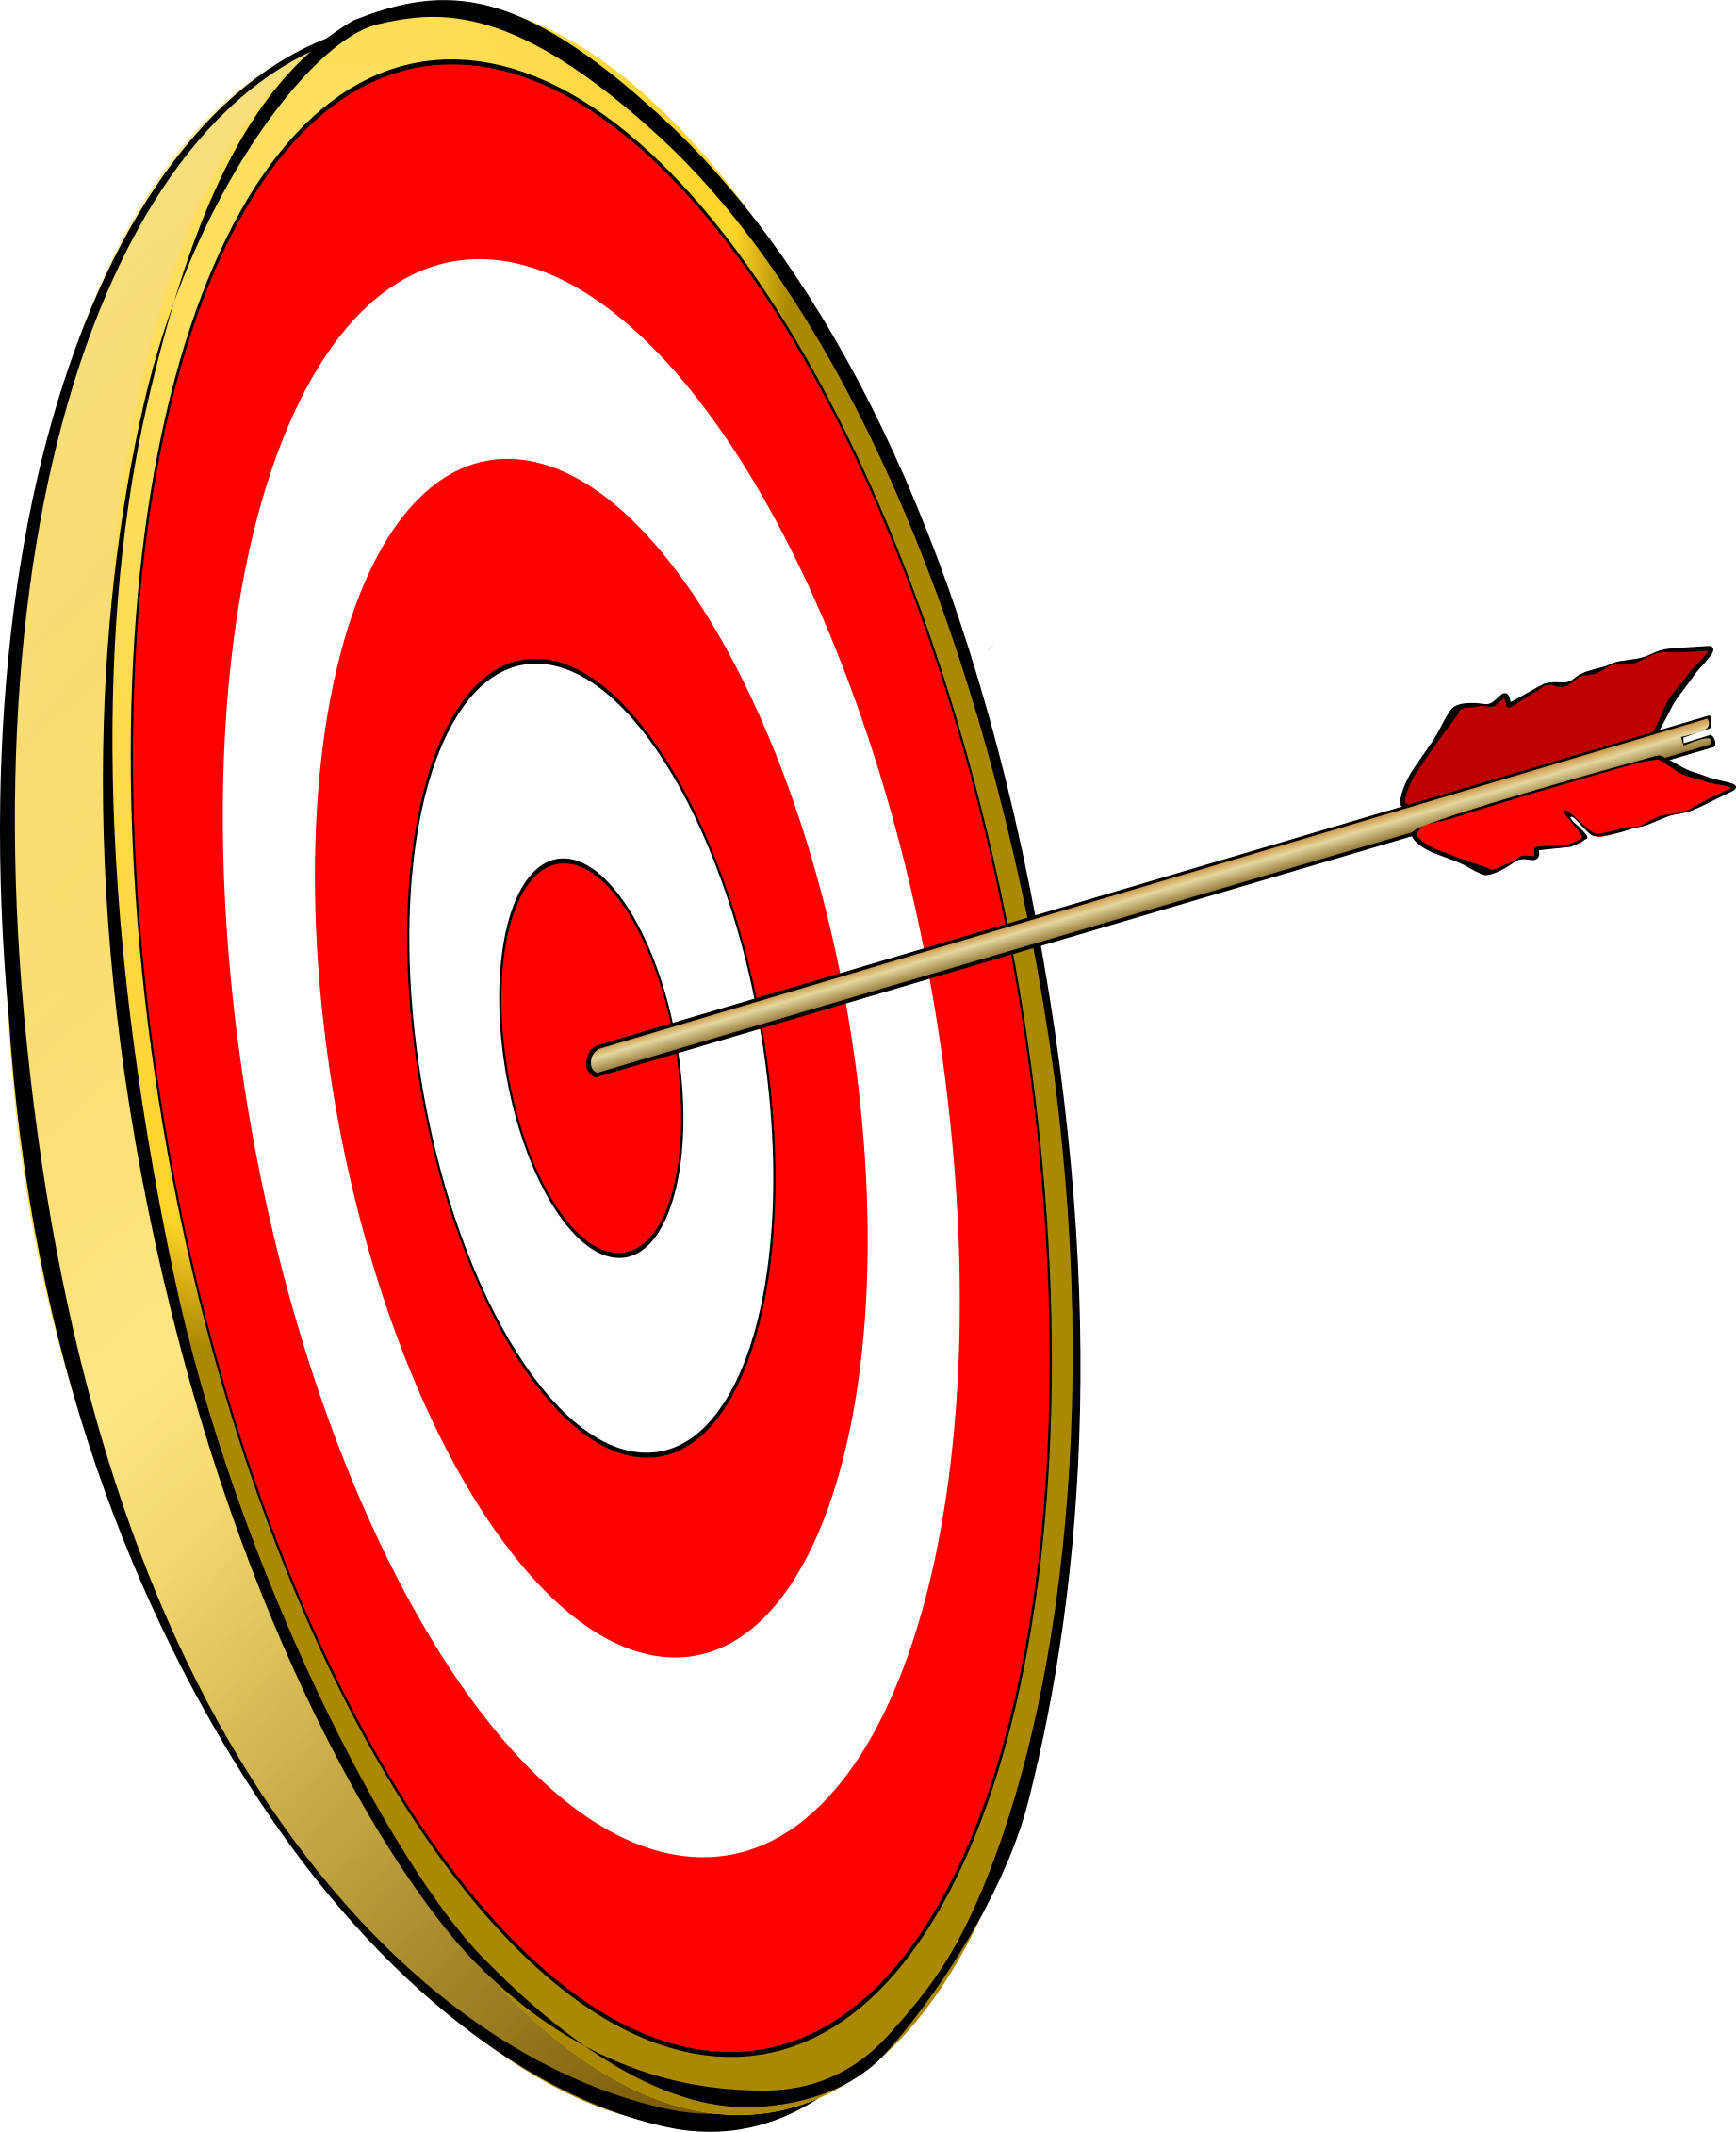 Bullseye clipart hit the target. Big image png